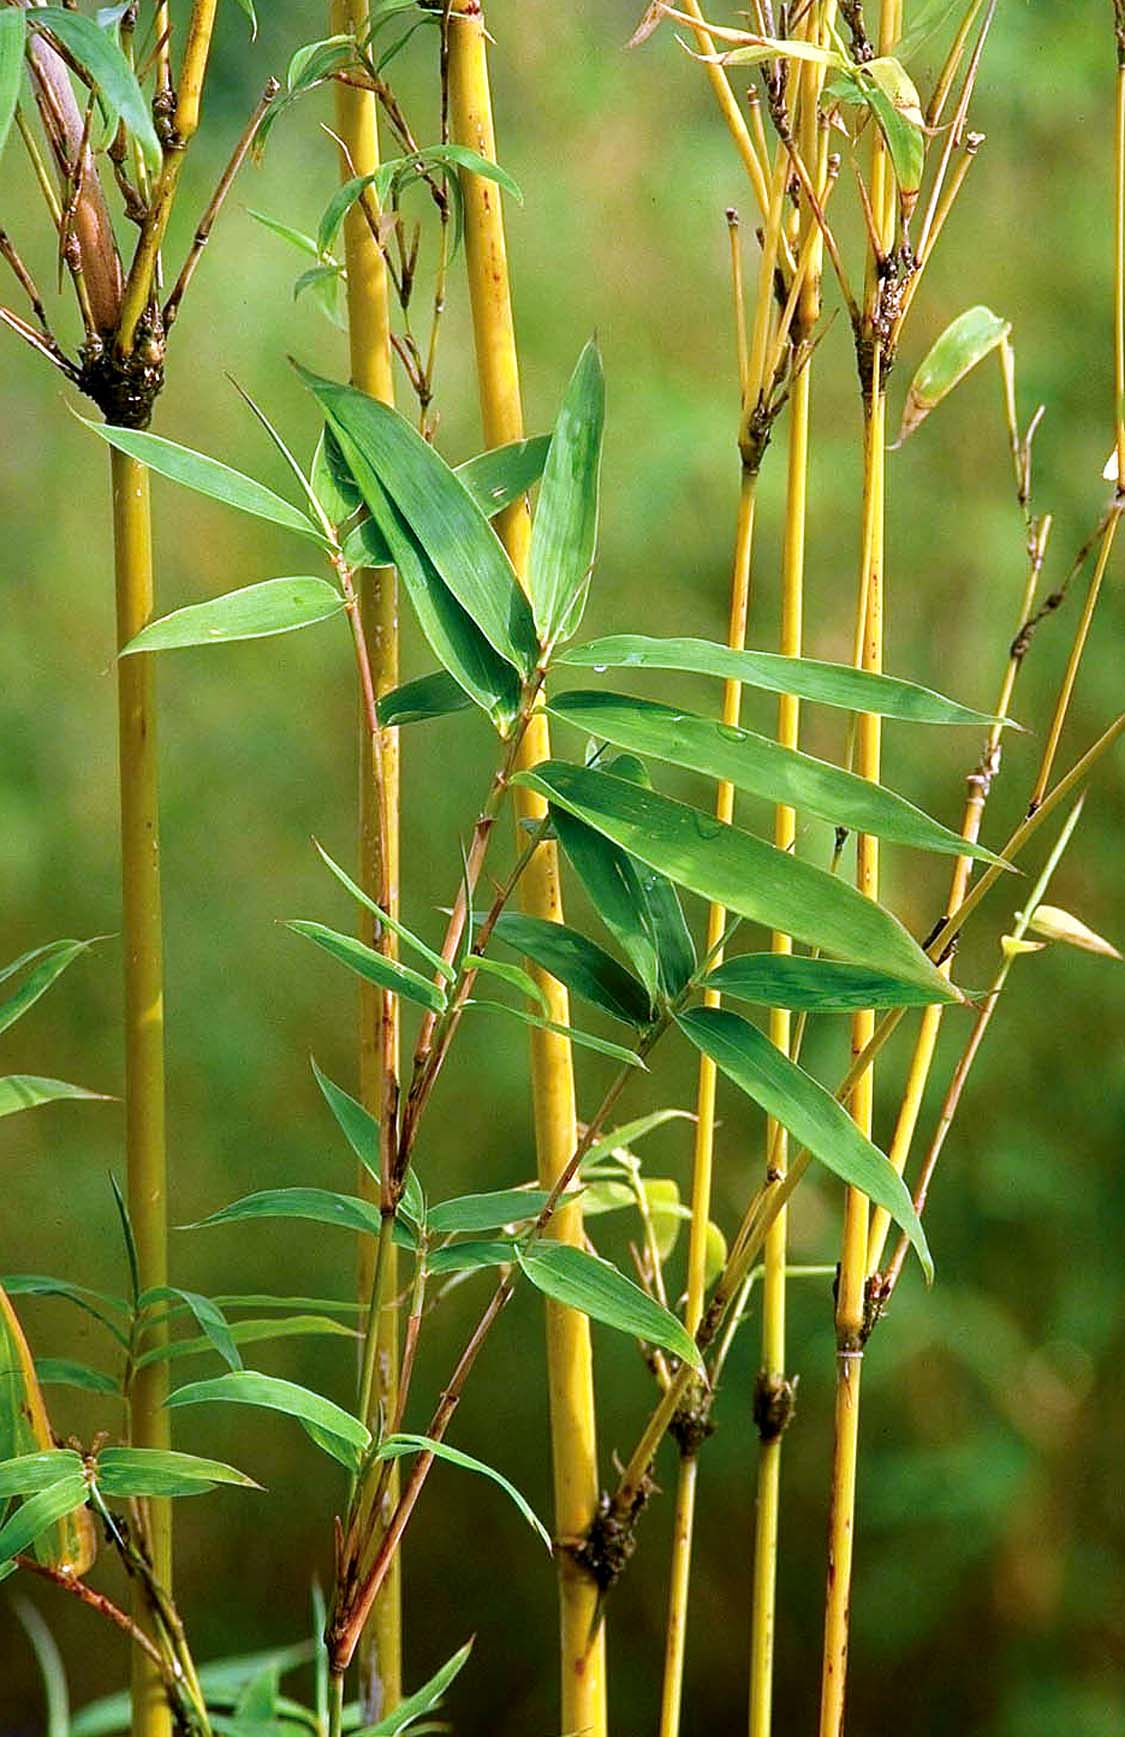 Green Bamboo Plant